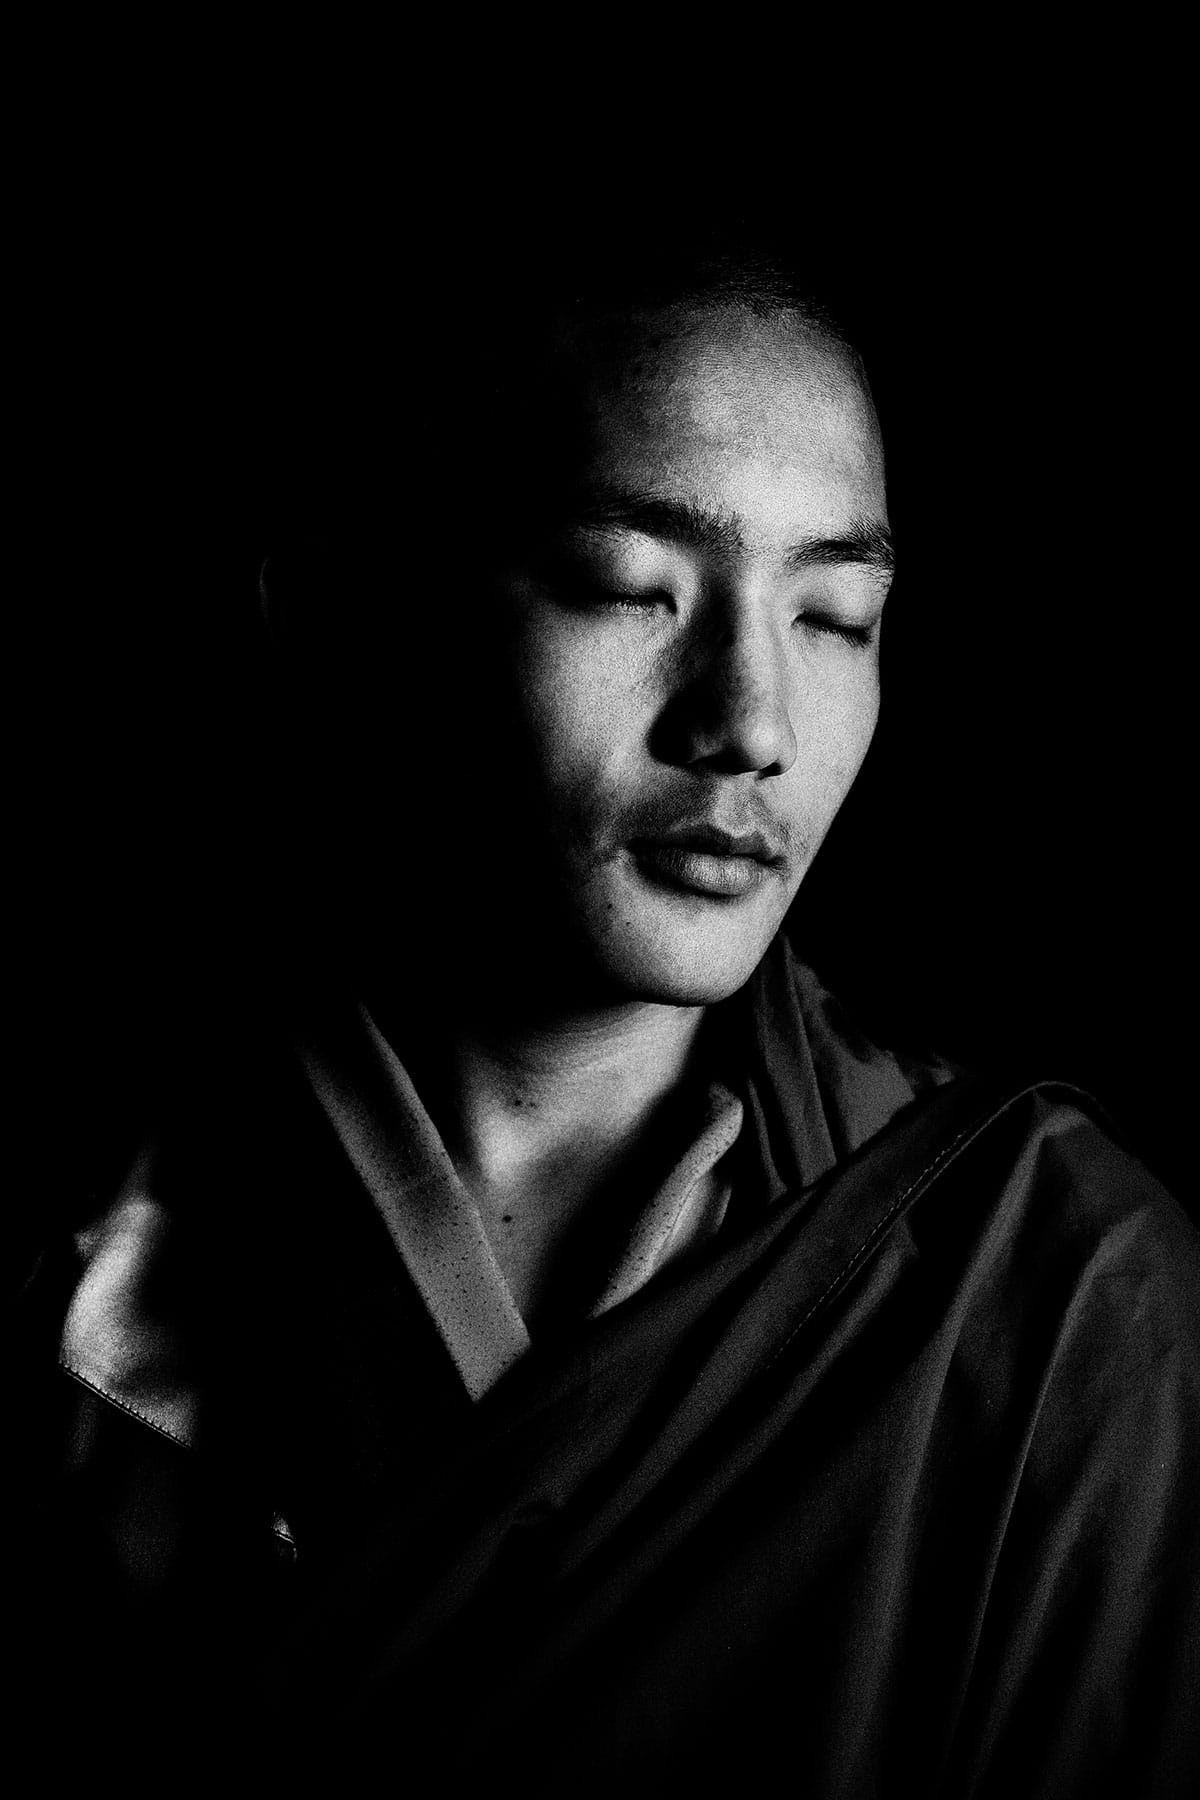 Eyes Closed Portrait of a Bhutanese Monk: Black and White Portrait Photography by Jean Tran and Élysée Lang